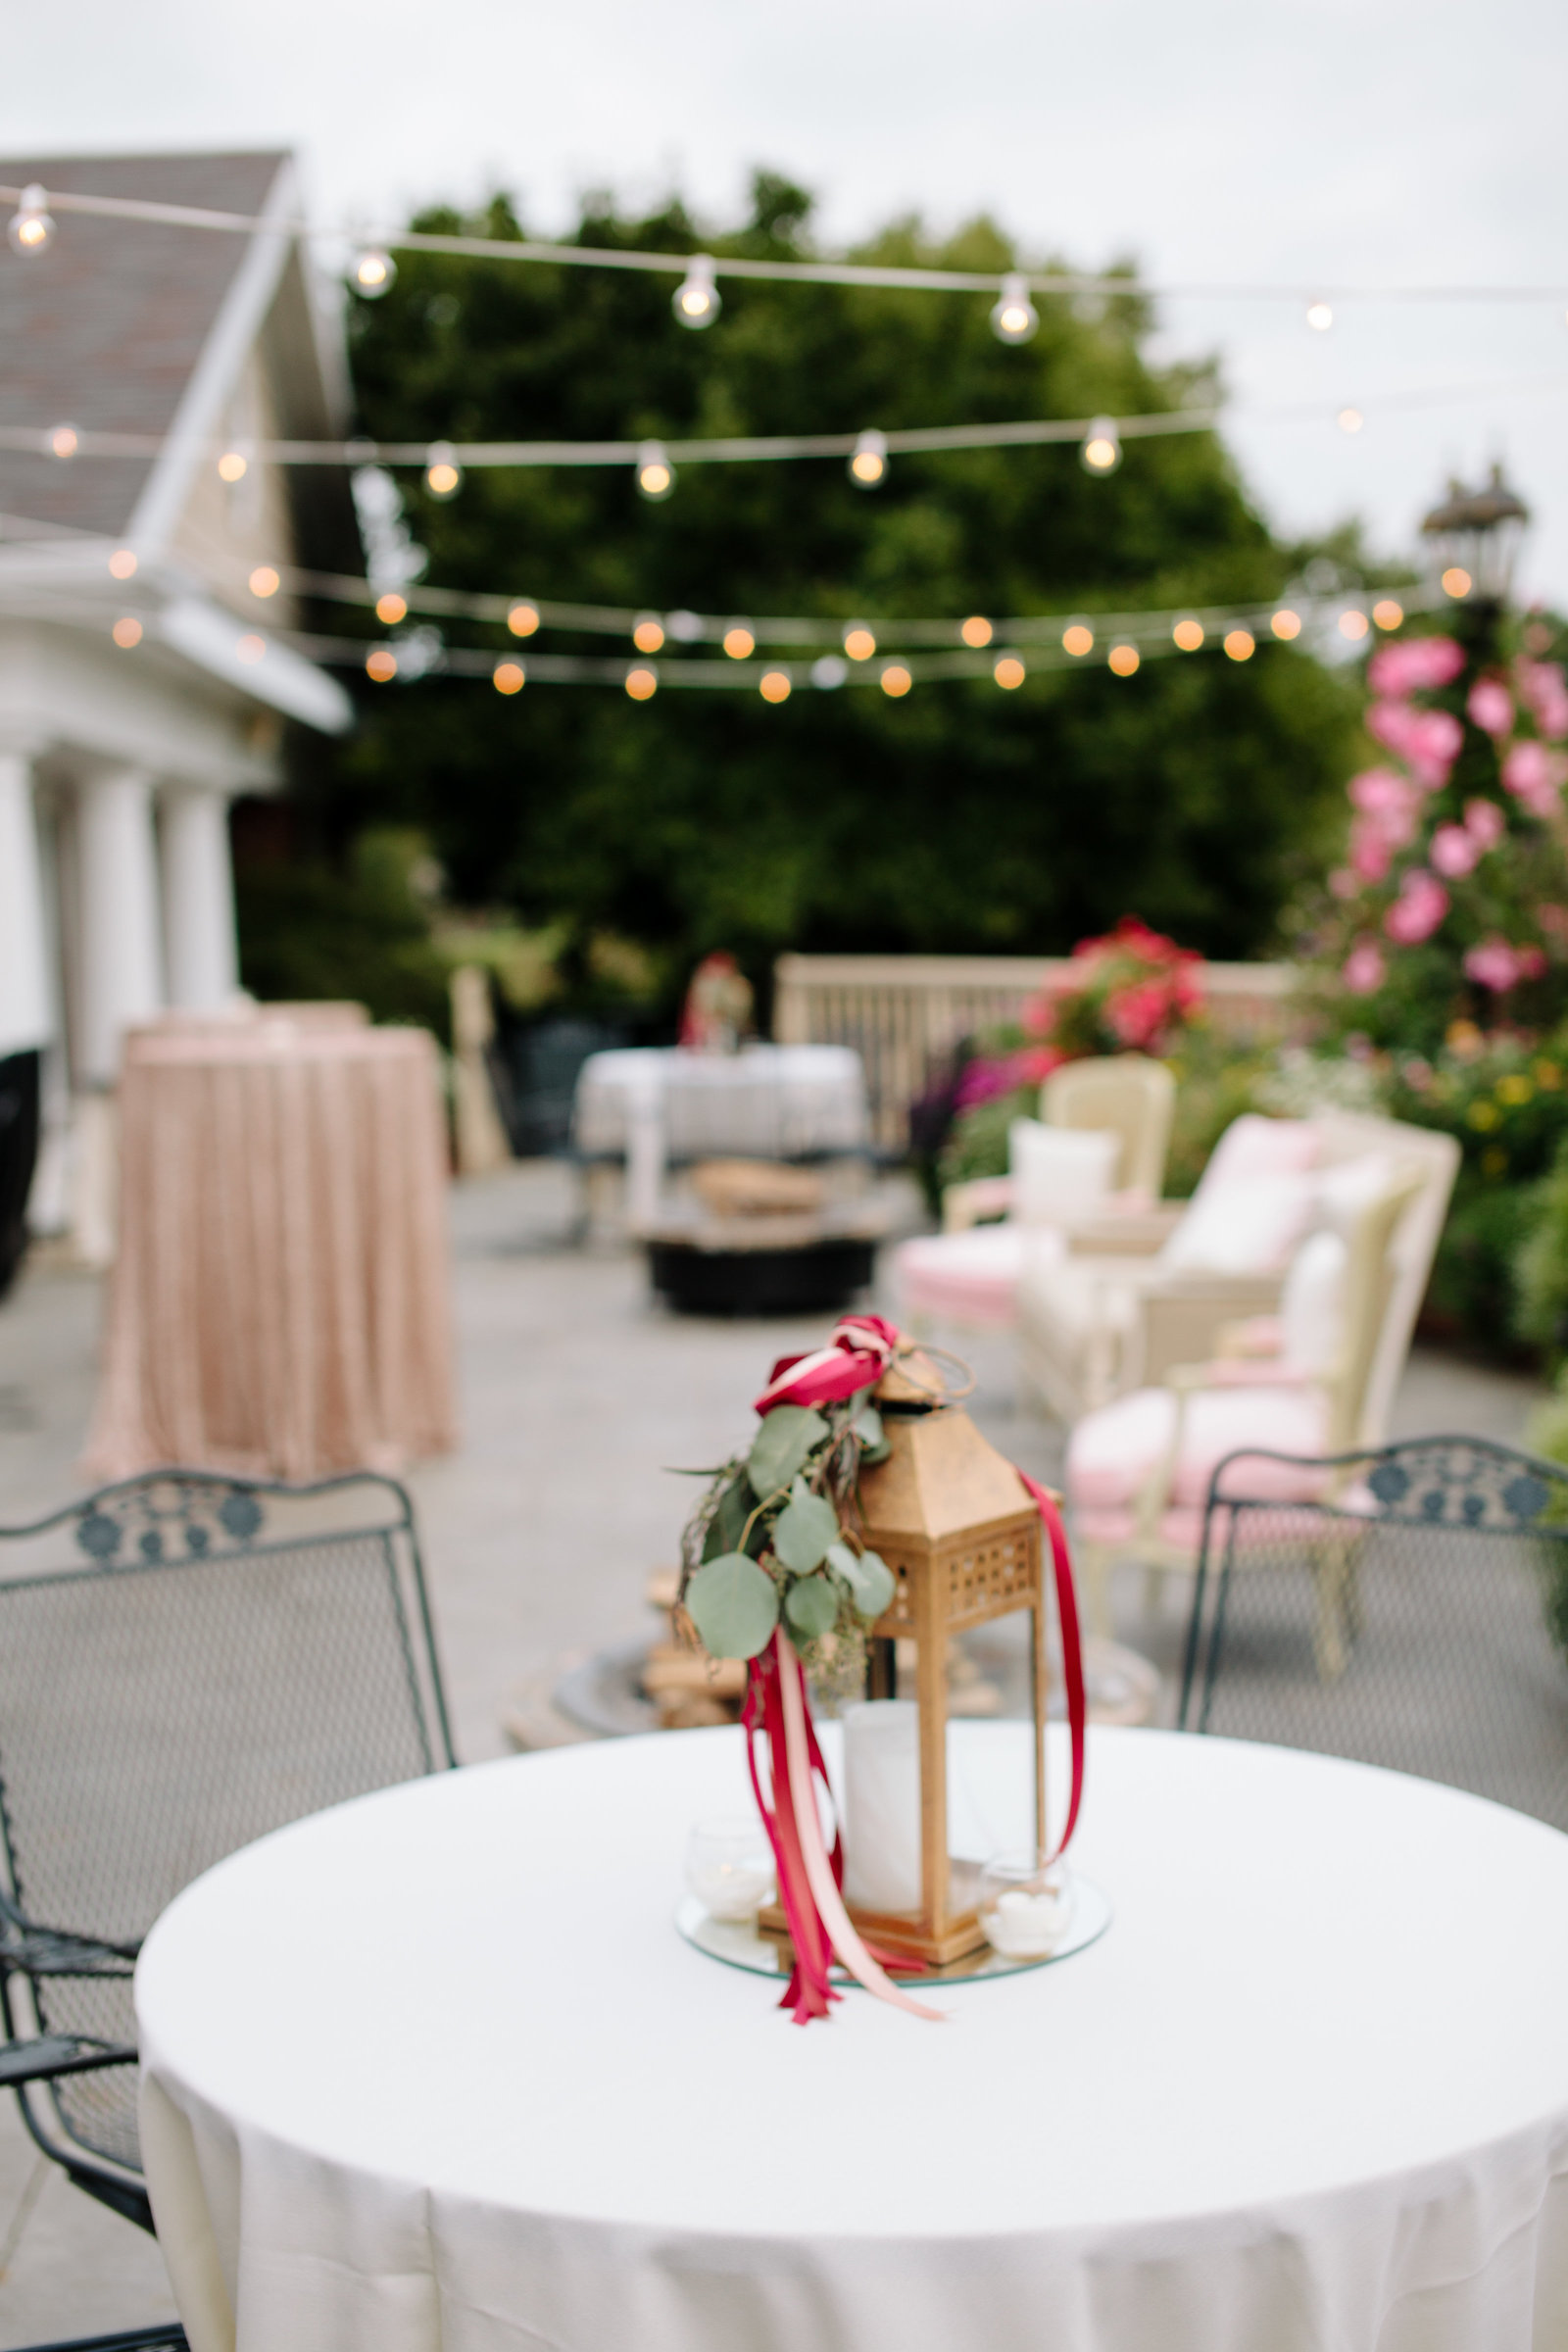 219_black_bow_tie_Forest_Hills_Country_Club_wedding_Outdoor_blush